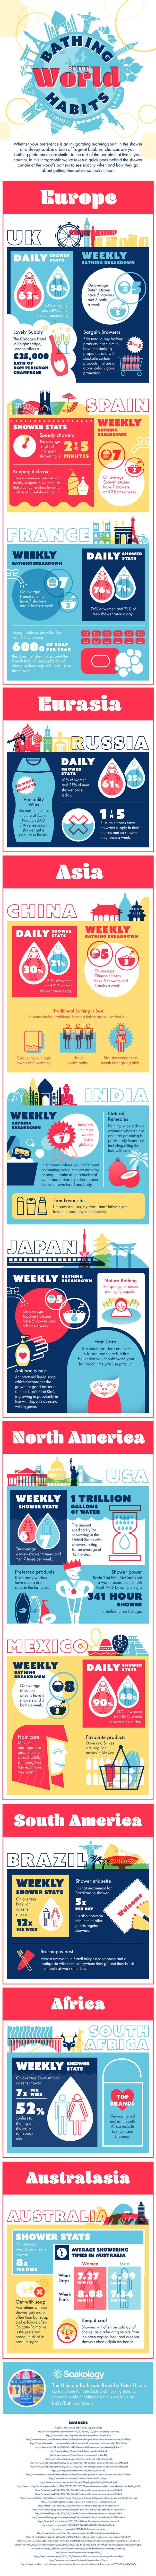 Bathing Habits of the World #Infographic